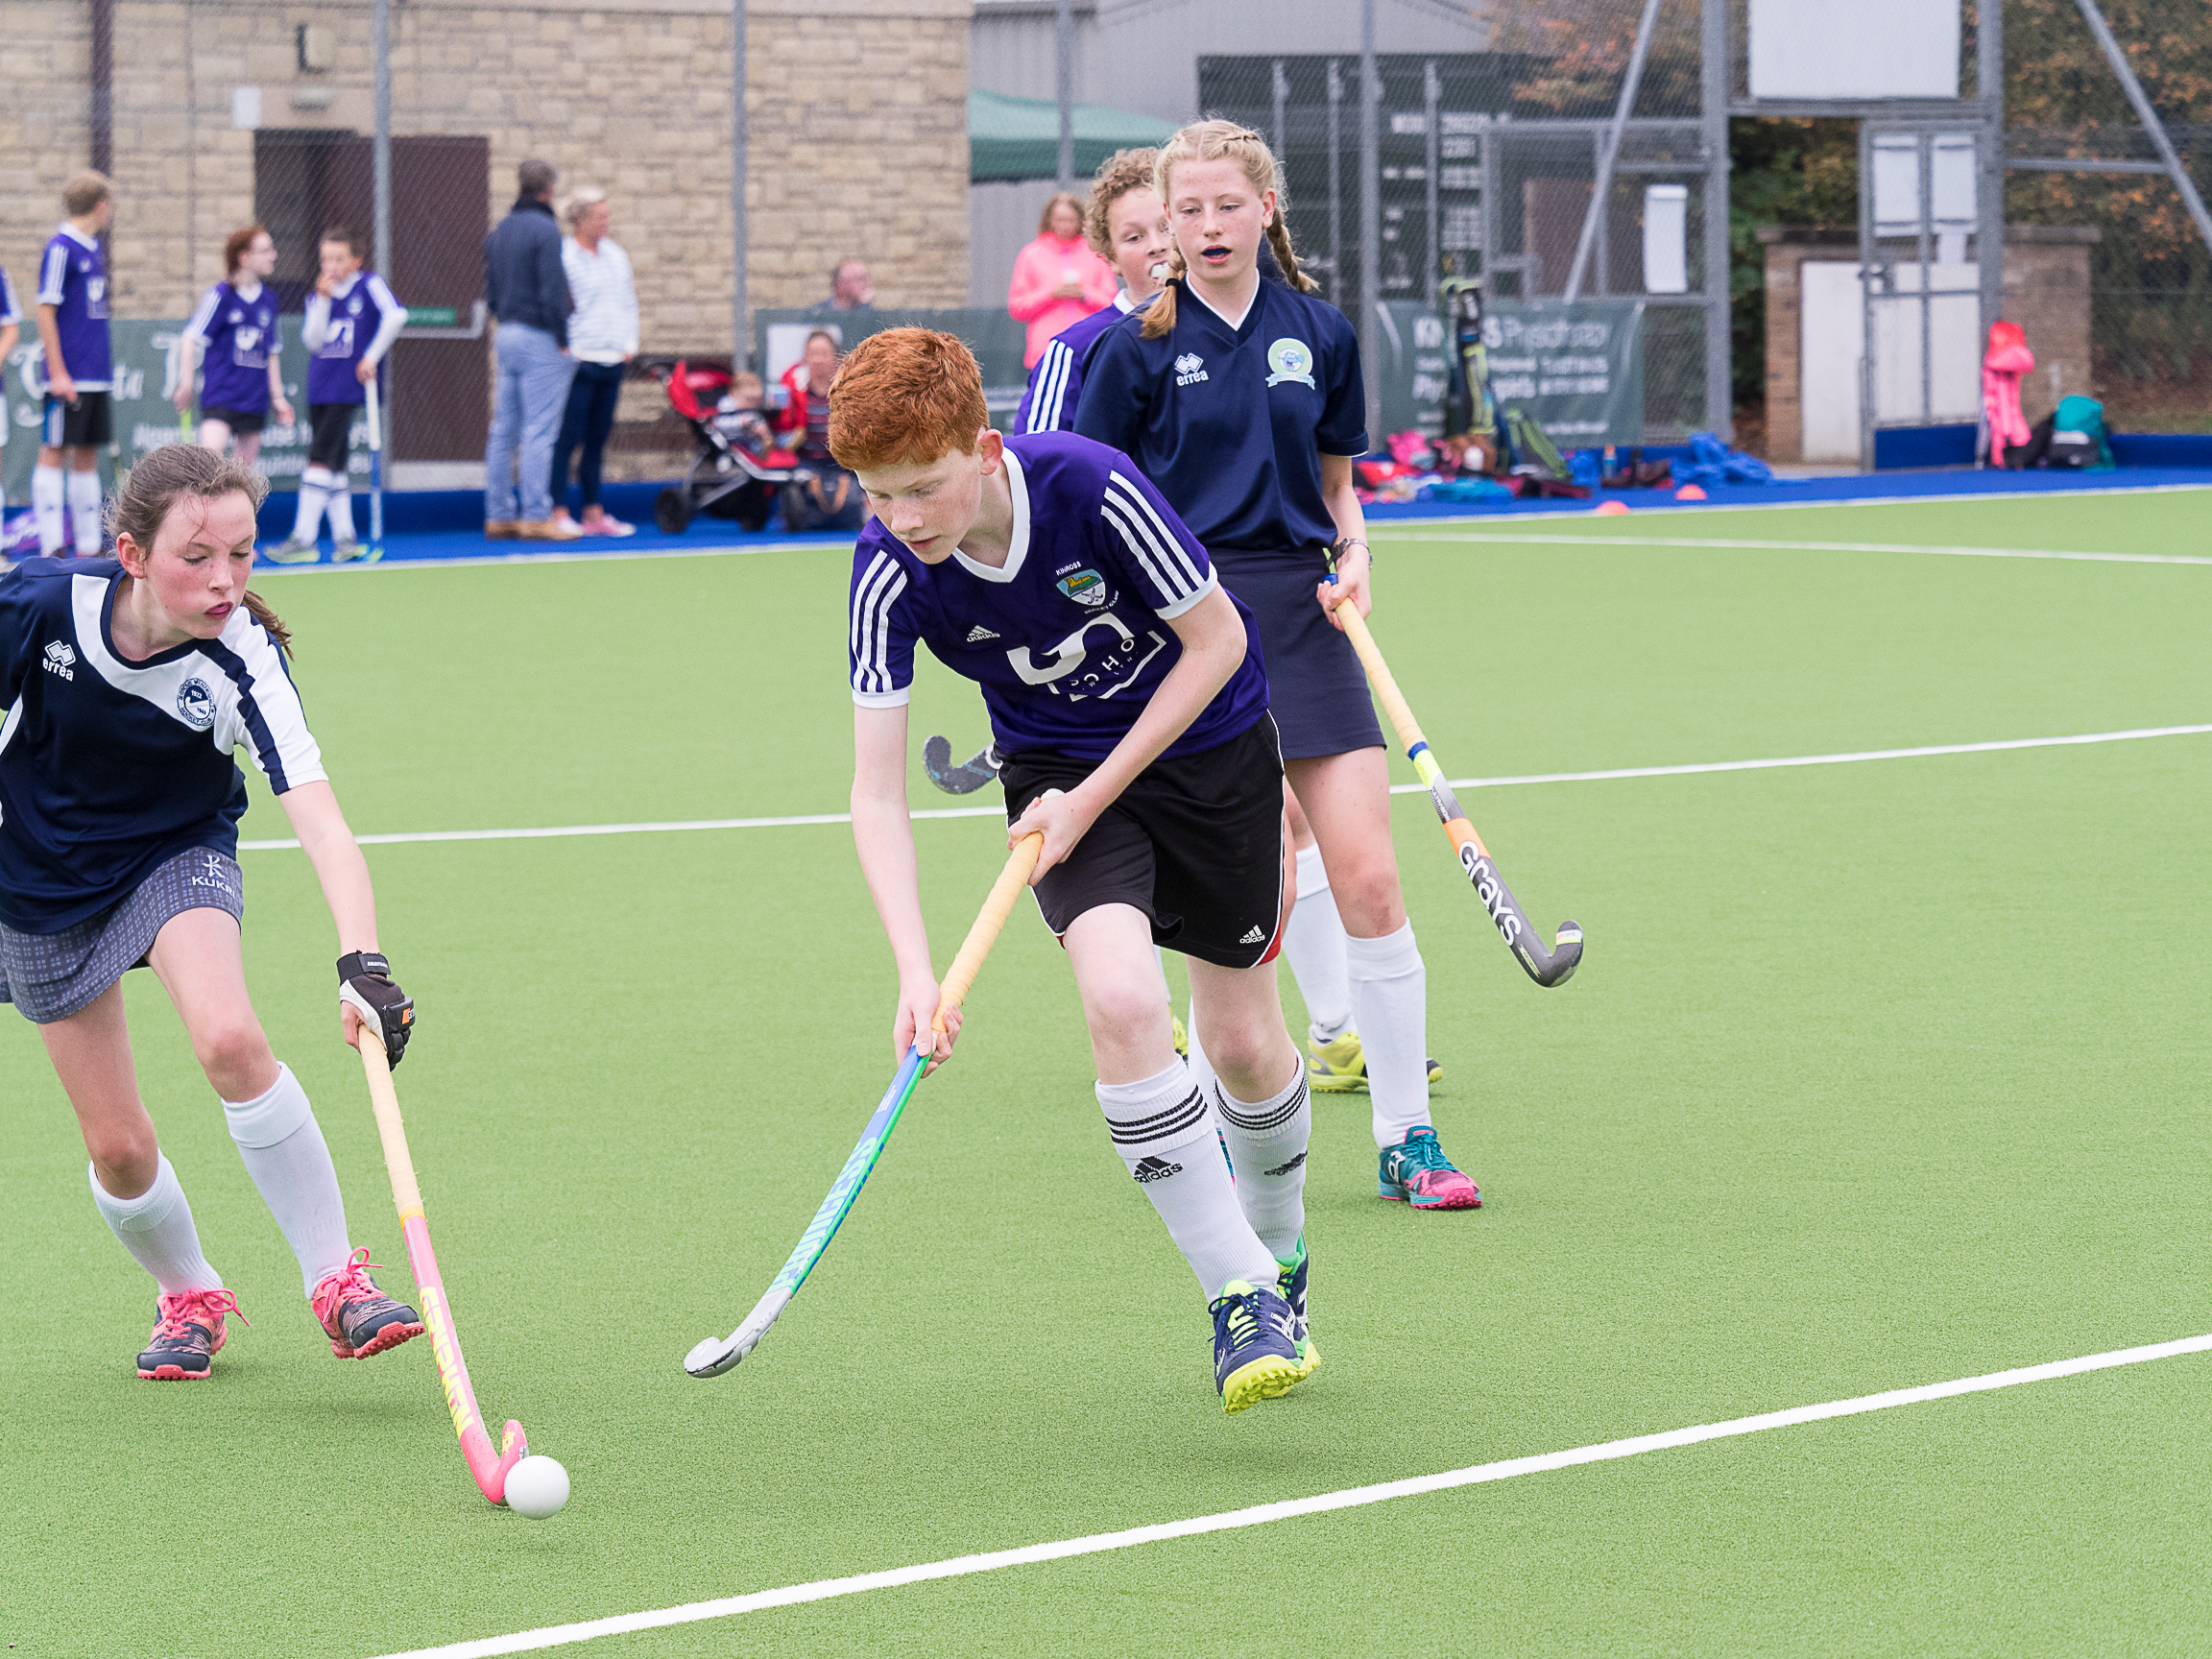 Hockey Kinross Sept 24th-92.jpg